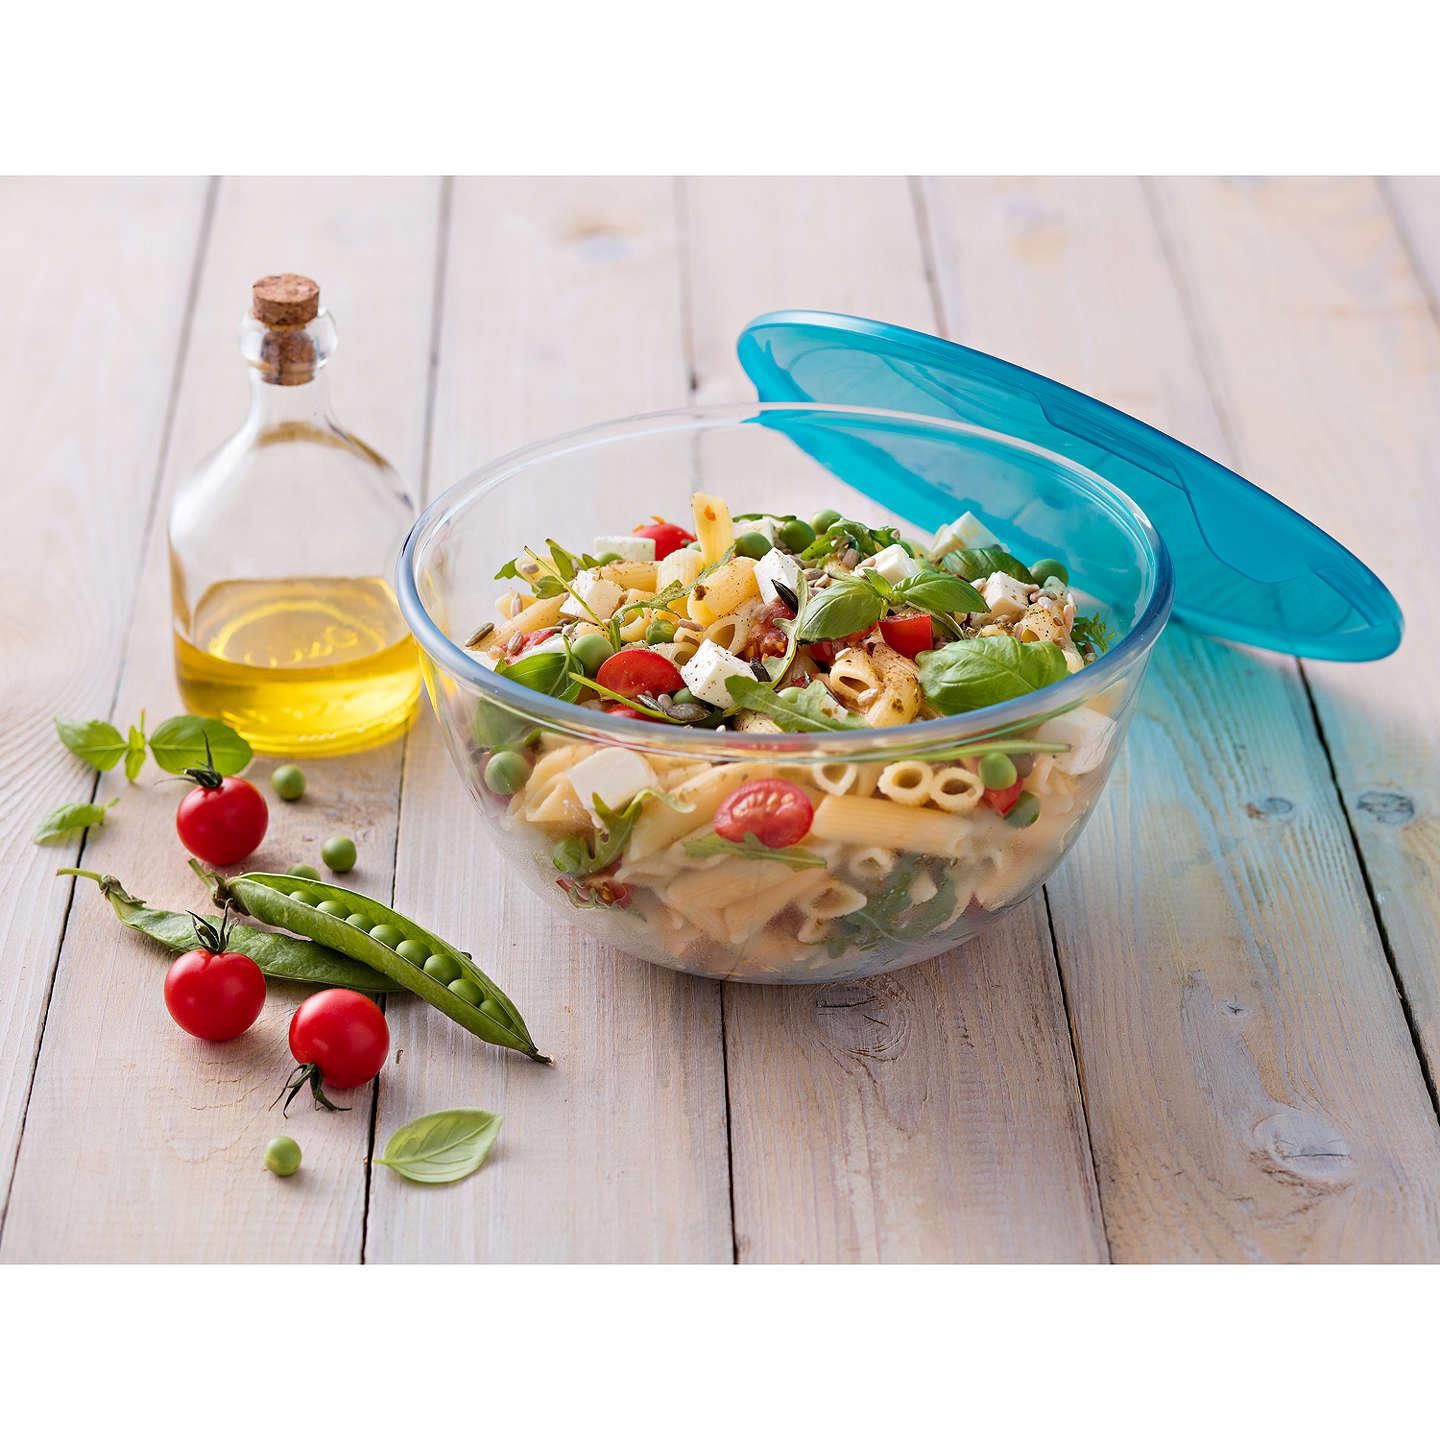 BuyPyrex Prep and Store Glass Bowl with Lid, Clear, 1L Online at johnlewis.com